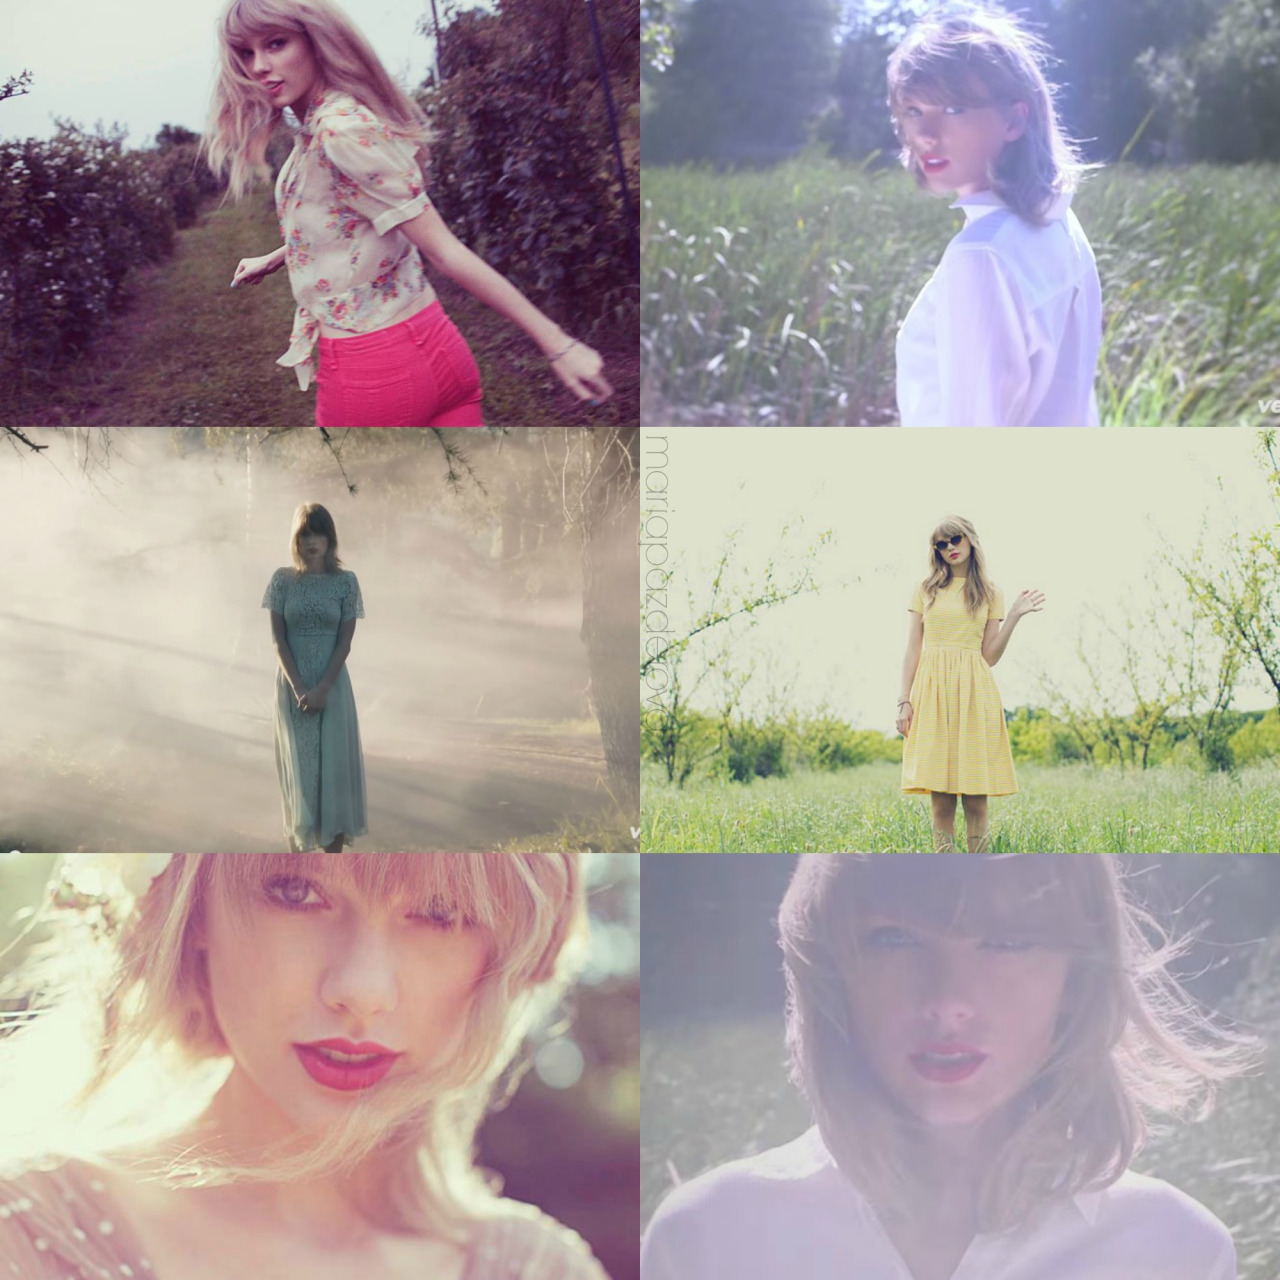 You Can Call Me Ria Taylorswift Red Album Art Style Music Video Via Tumblr